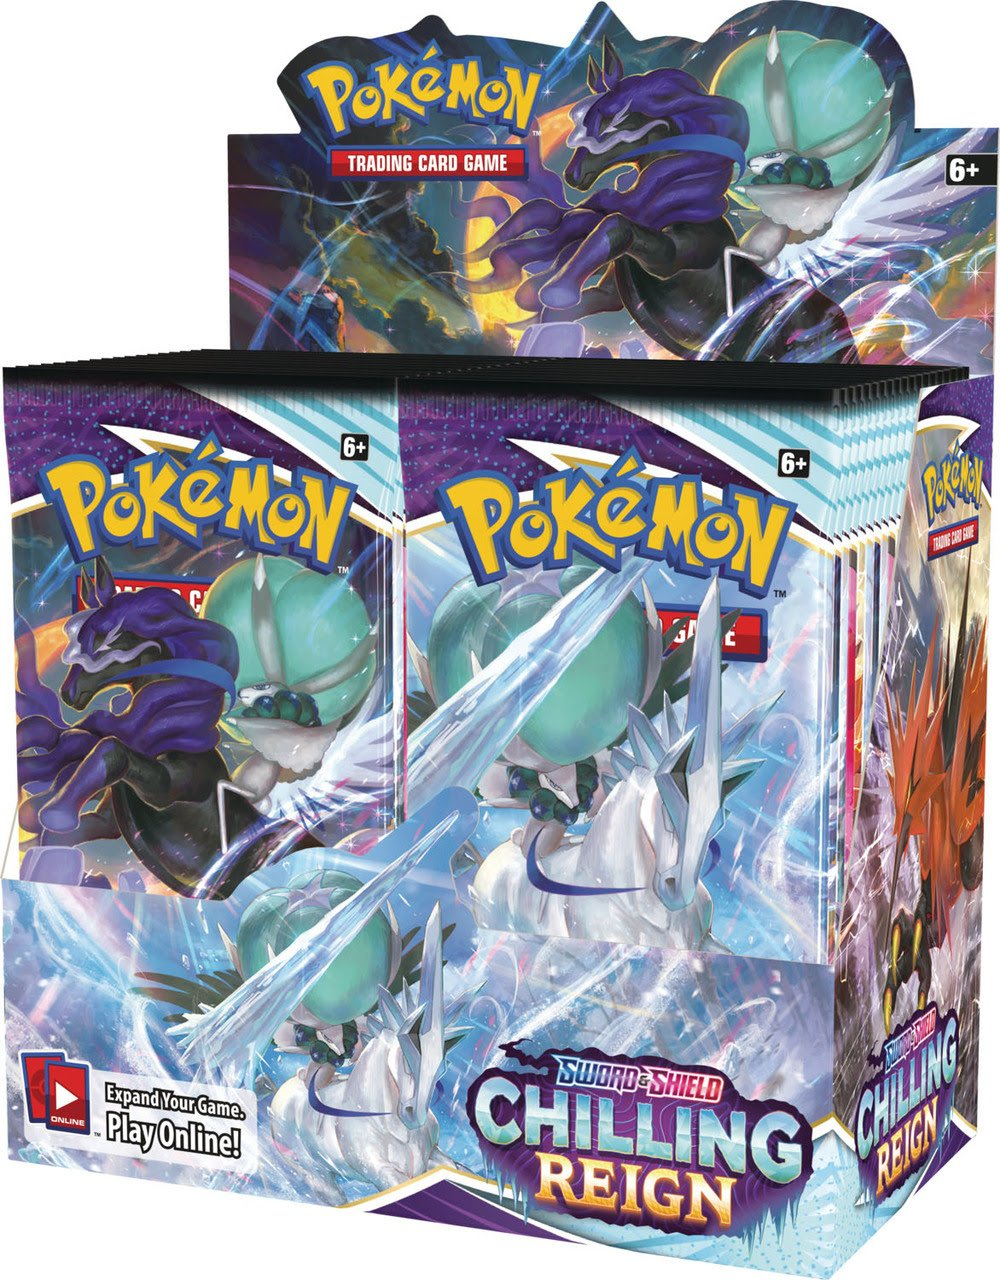 Pokemon - Sword and Sheild - Chilling Reign